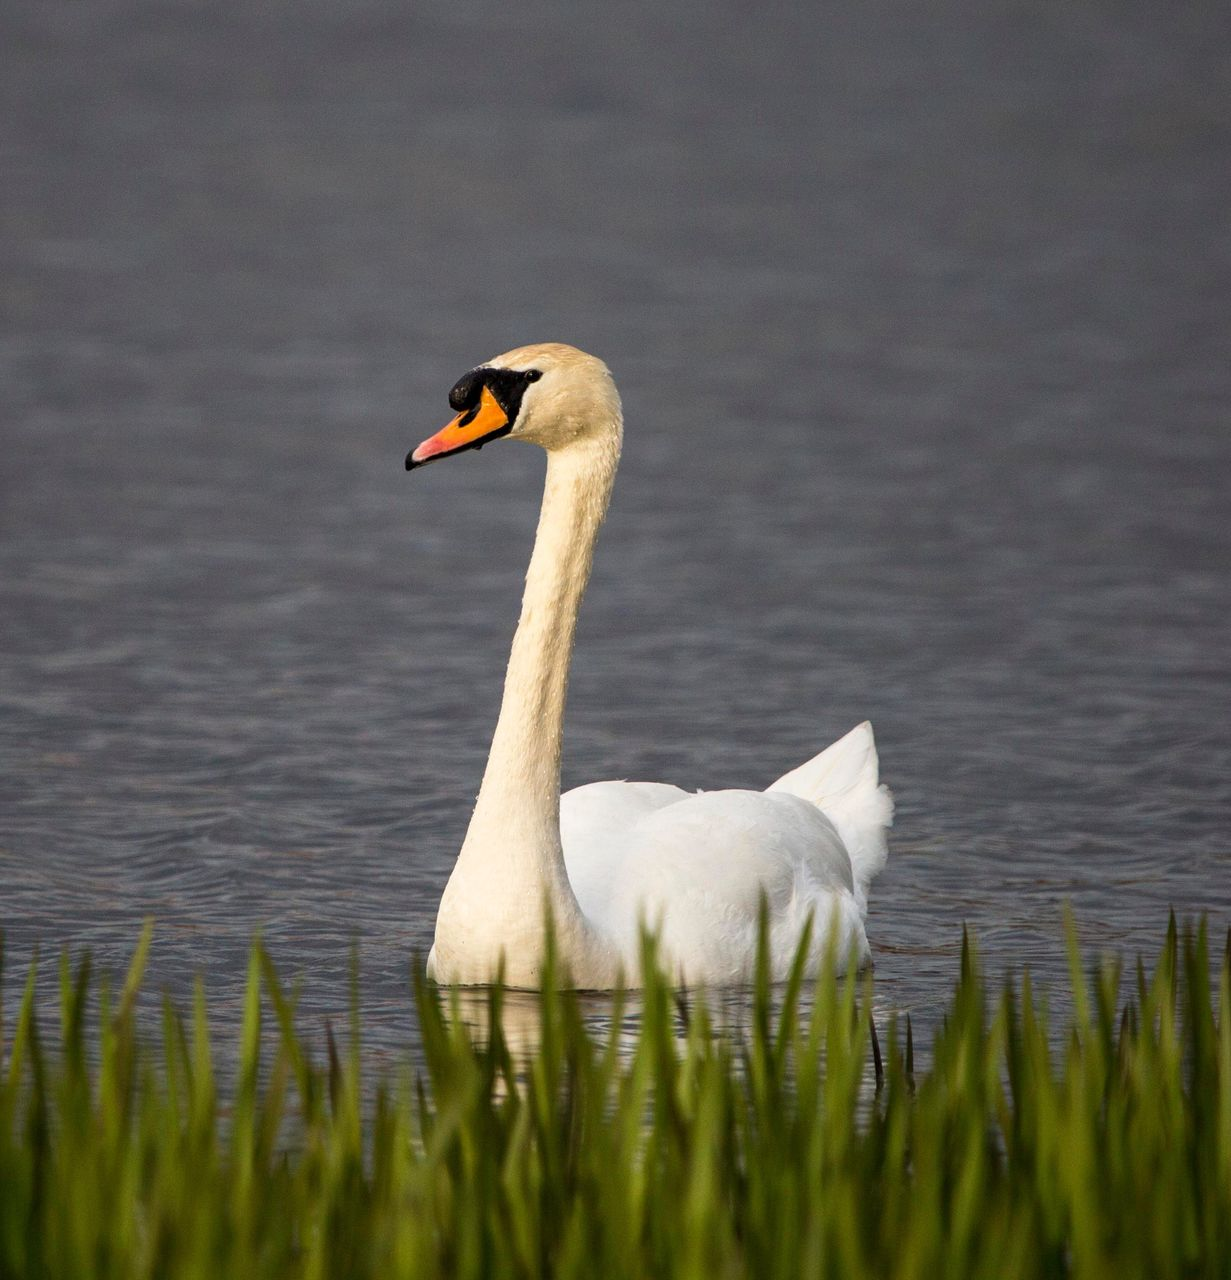 animal themes, bird, animal, vertebrate, animals in the wild, water, swan, animal wildlife, lake, water bird, nature, day, swimming, group of animals, no people, two animals, grass, plant, zoology, outdoors, animal family, animal neck, cygnet